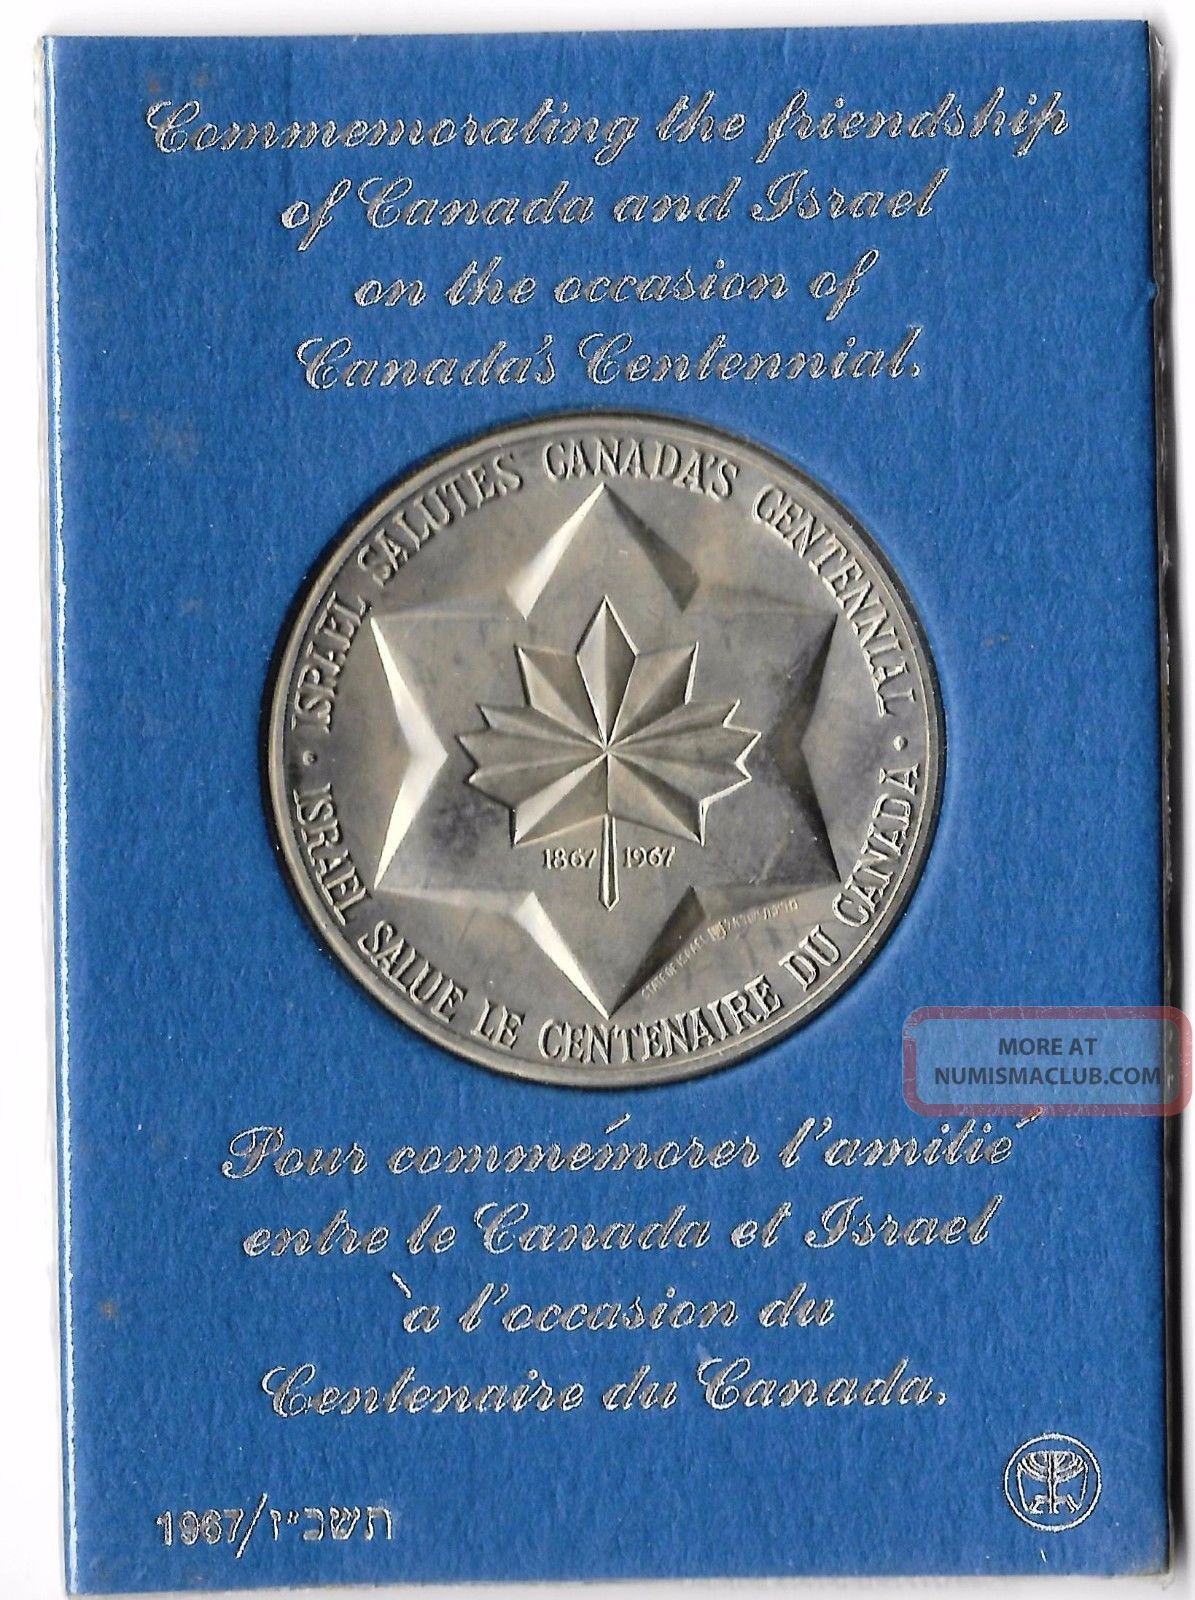 1967 Canada Israel Friendship Medal Coin (183) Middle East photo